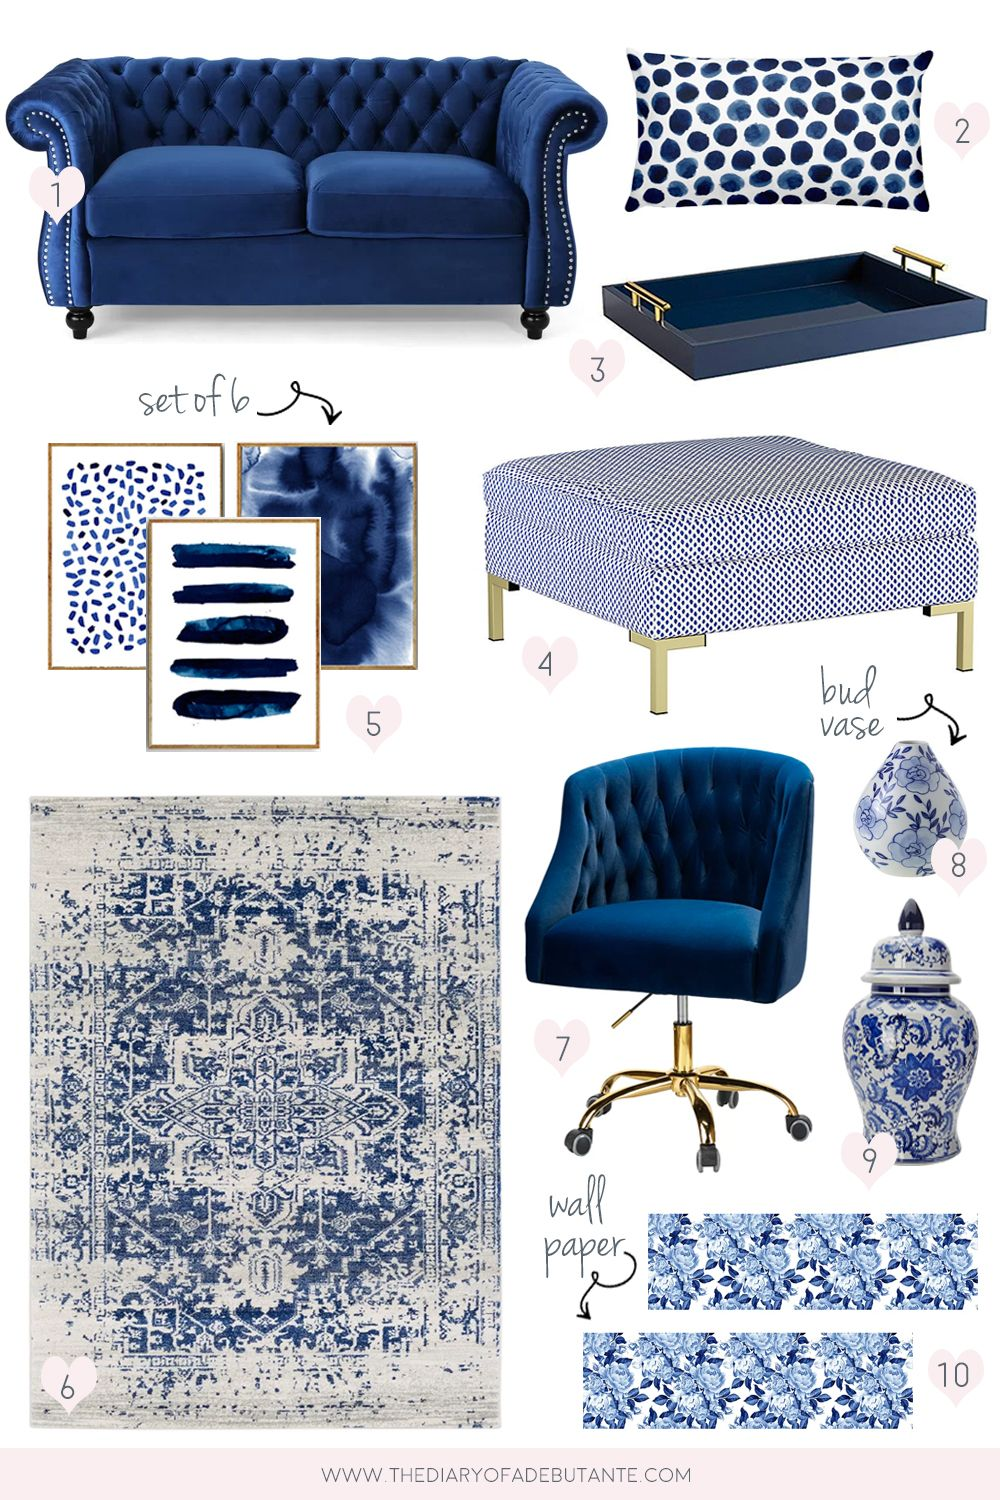 Budget-Friendly Blue and White Home Accessories and Decor Finds